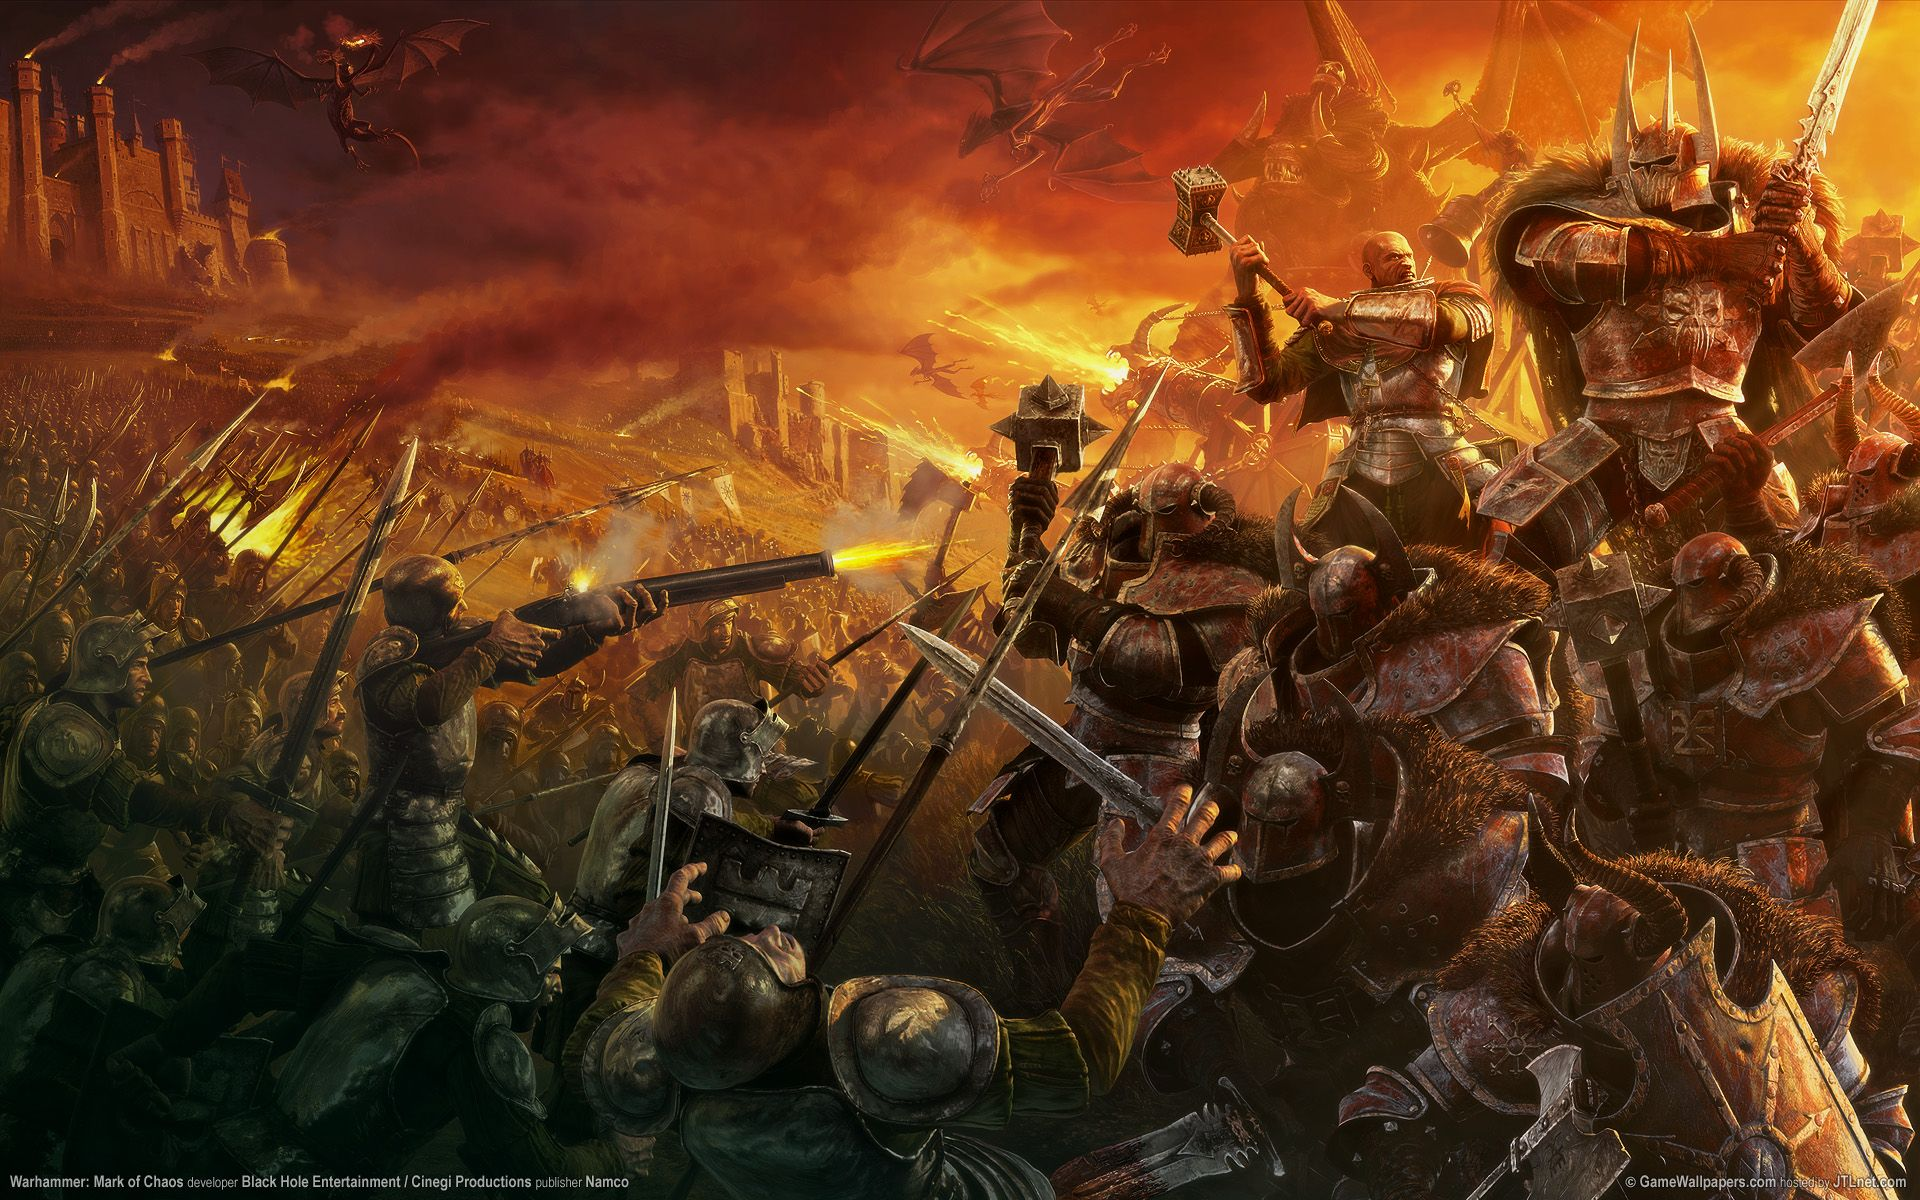 Warhammer Computer Wallpapers Desktop Backgrounds 1920x1200 Id 225411 Fantasy Art Warriors Wallpaper Fantasy Pictures